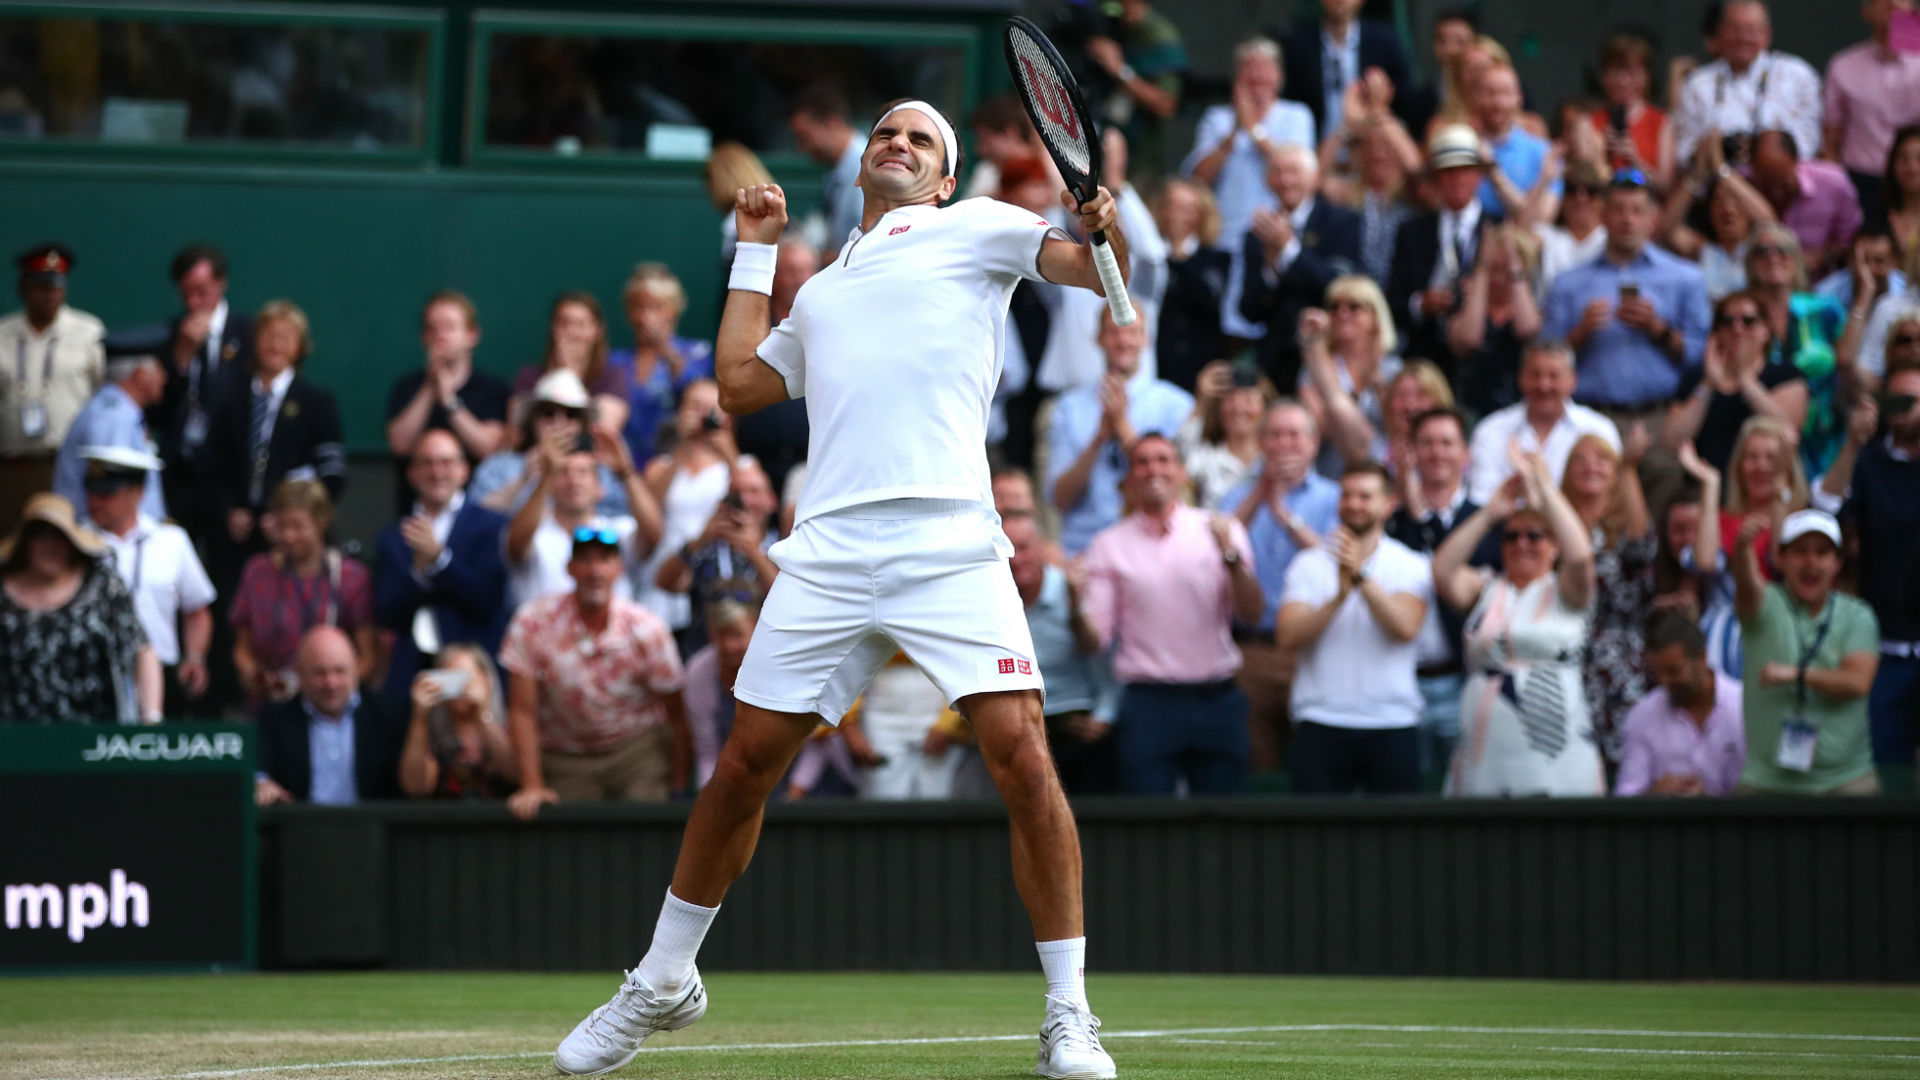 Majestic Federer and Nadal prove you can never have too much of a good thing